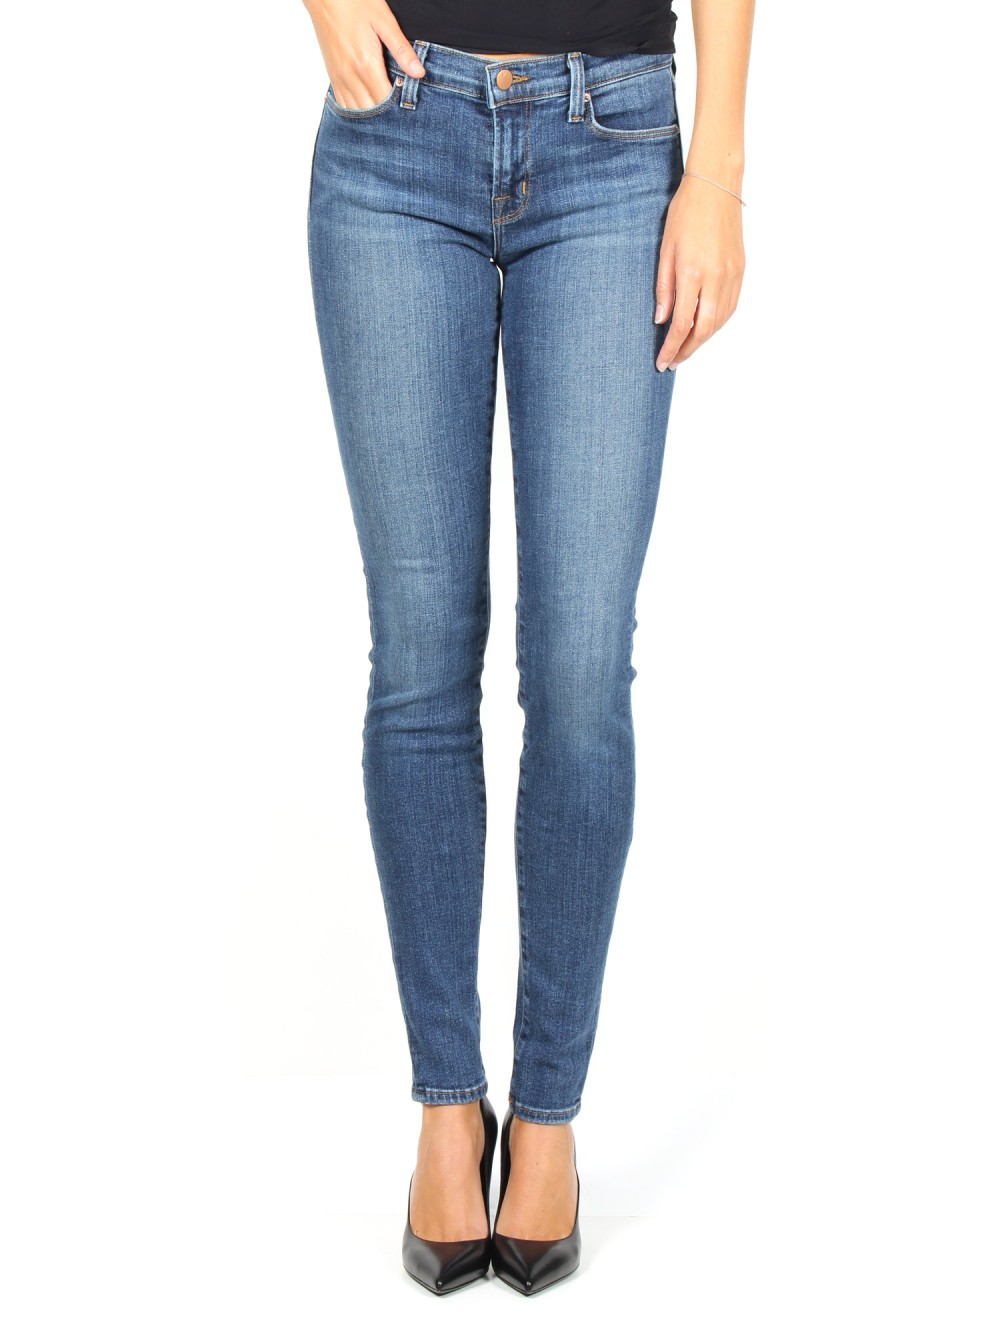 Skinny jeans on sale for women – Global fashion jeans models